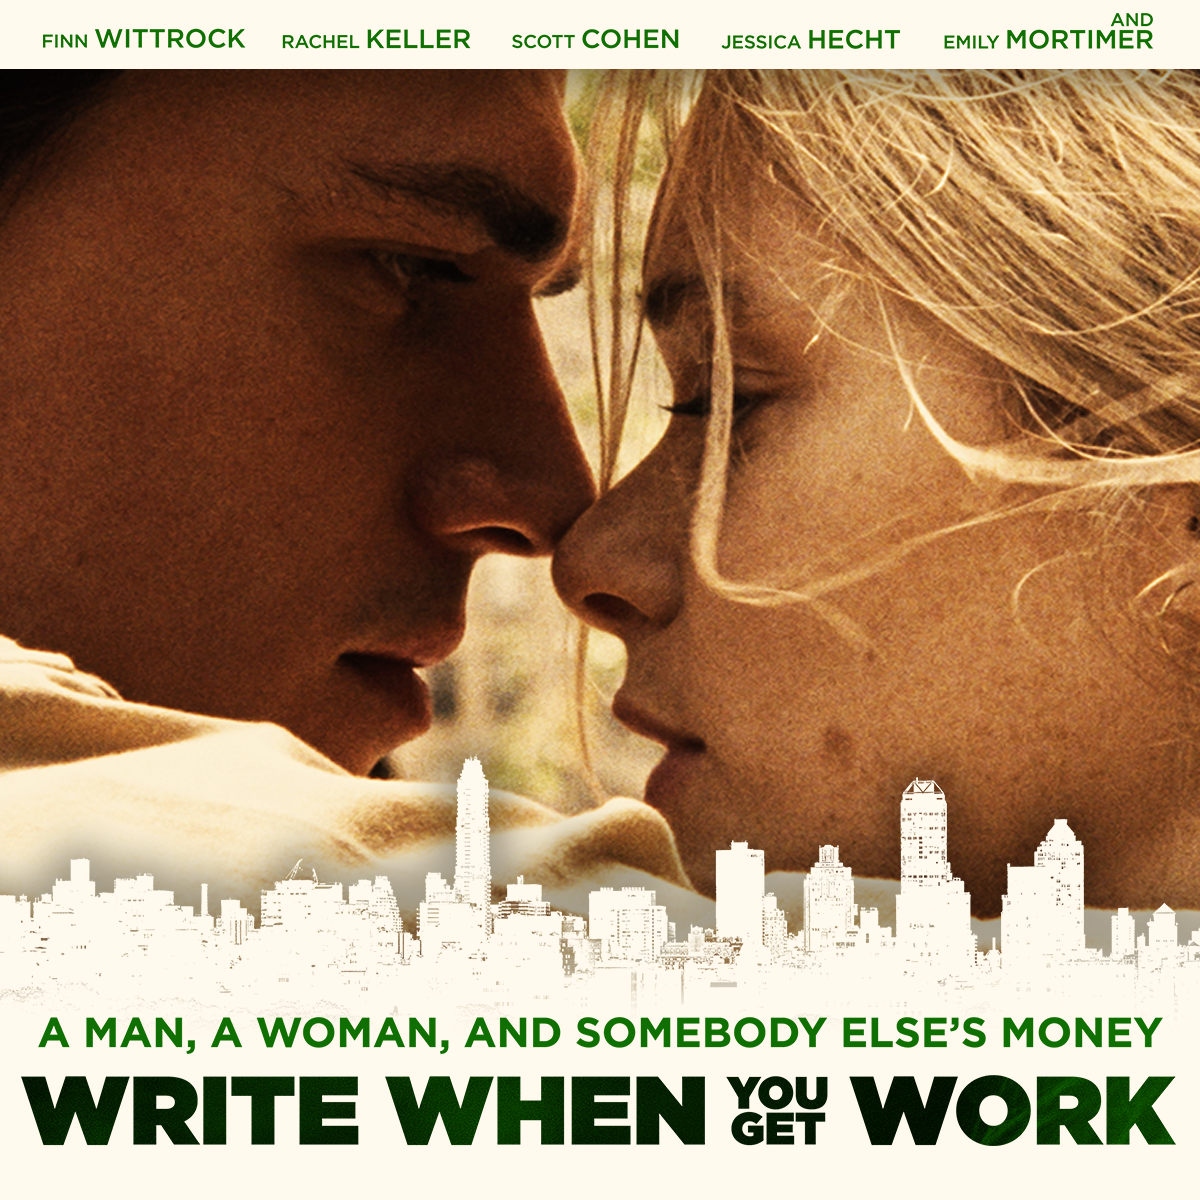 Cast & Crew — WRITE WHEN YOU GET WORK